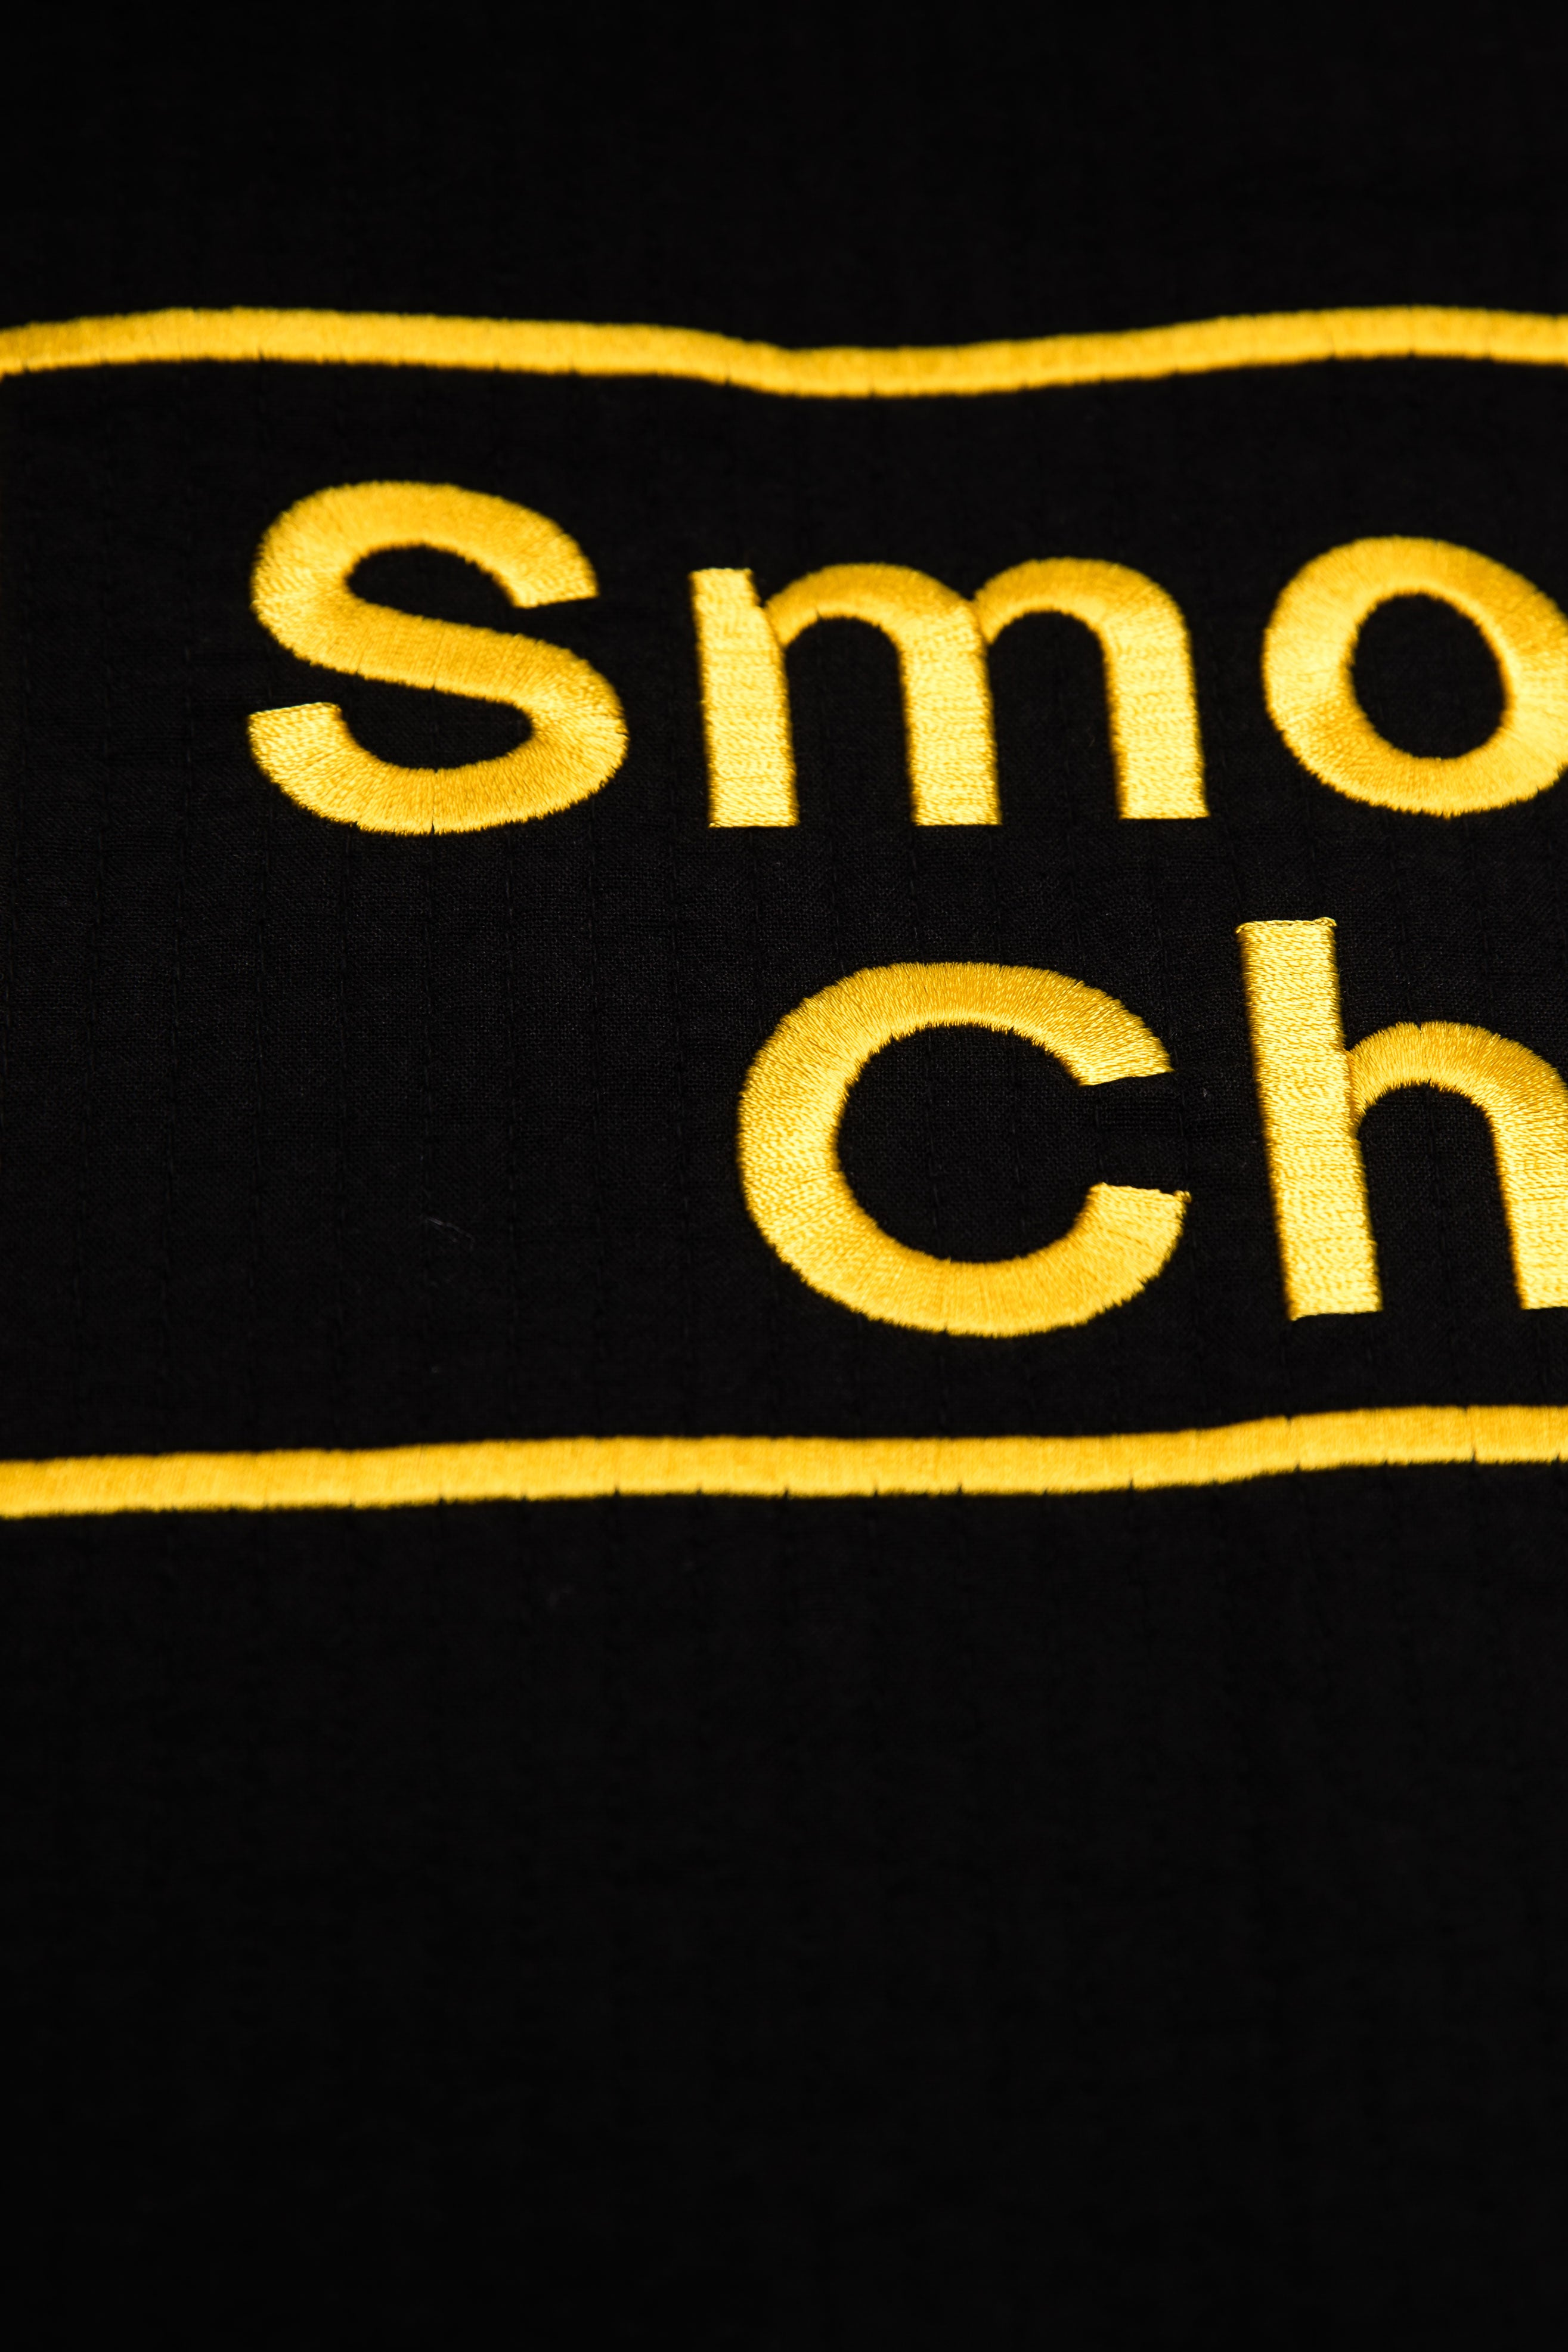 Smoking Chills Nubi Monk Shirt